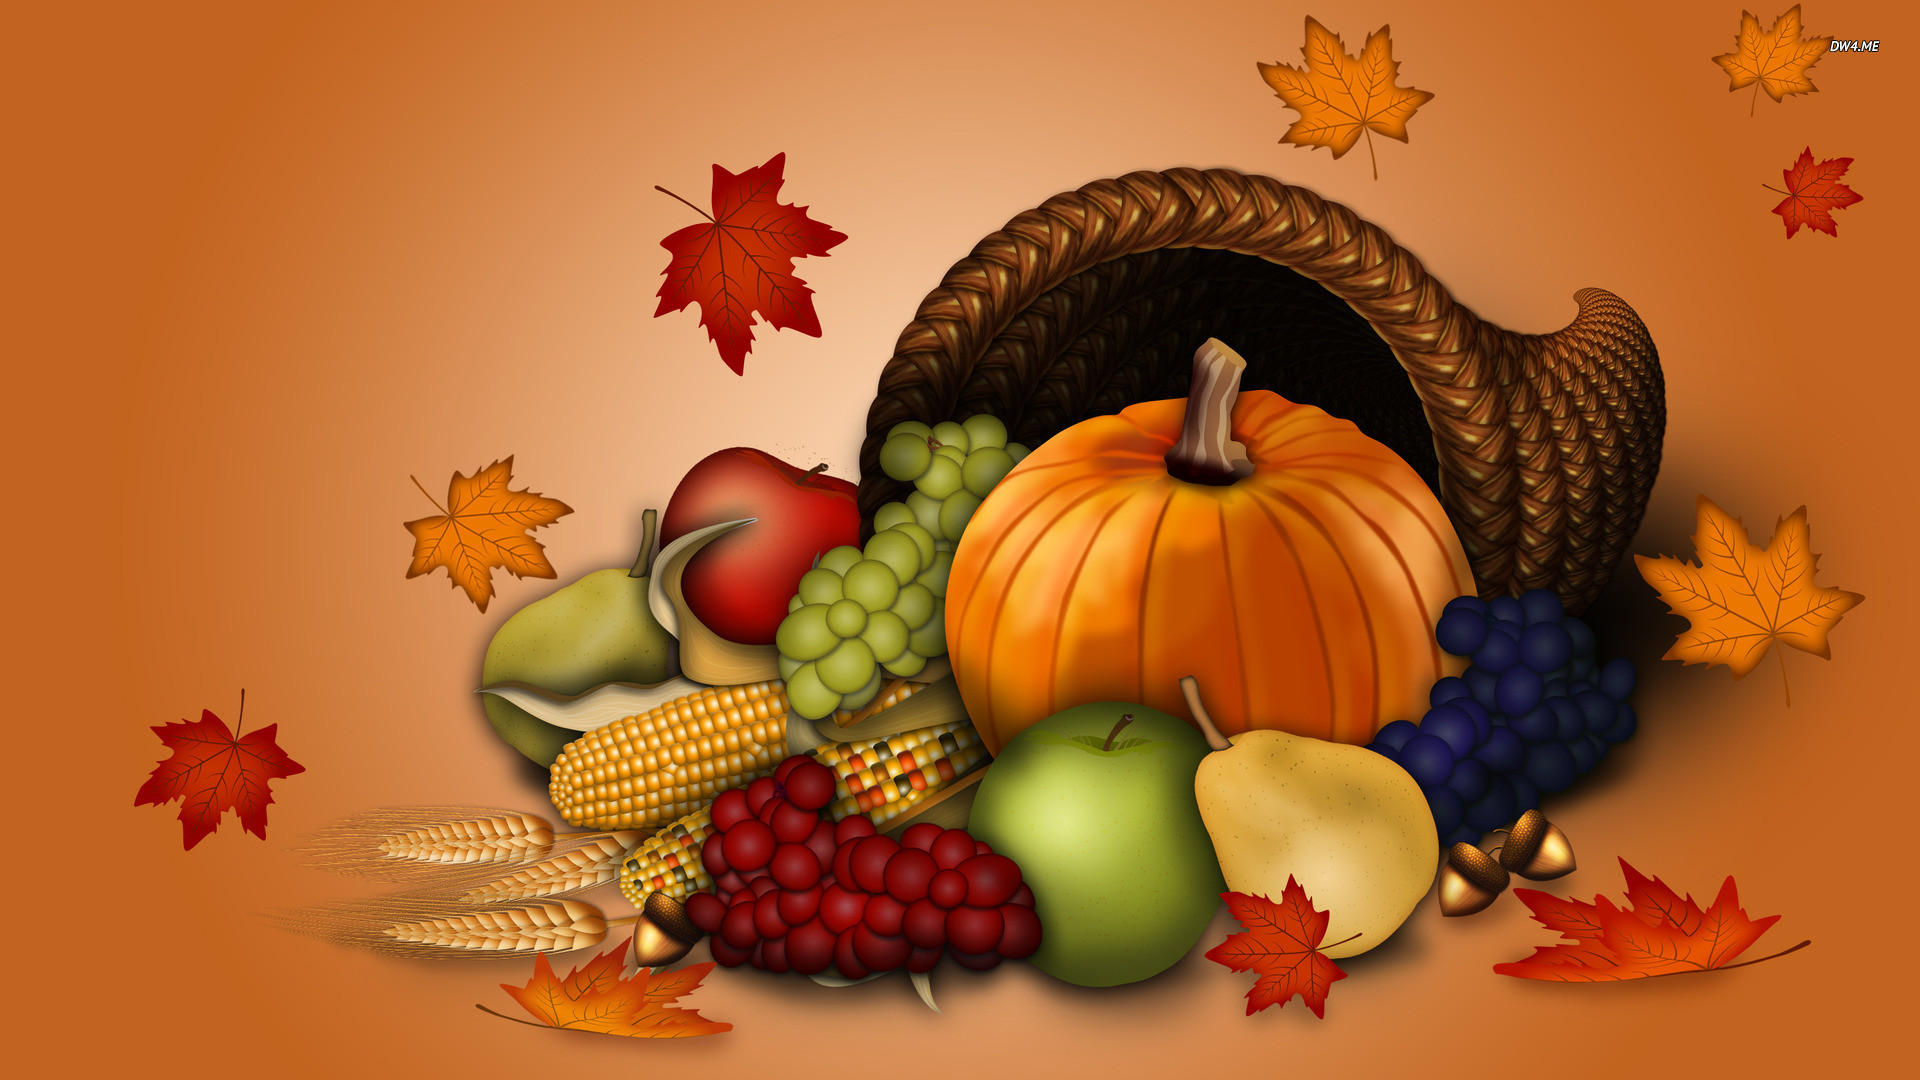 Thanksgiving Backgrounds 1920x1080